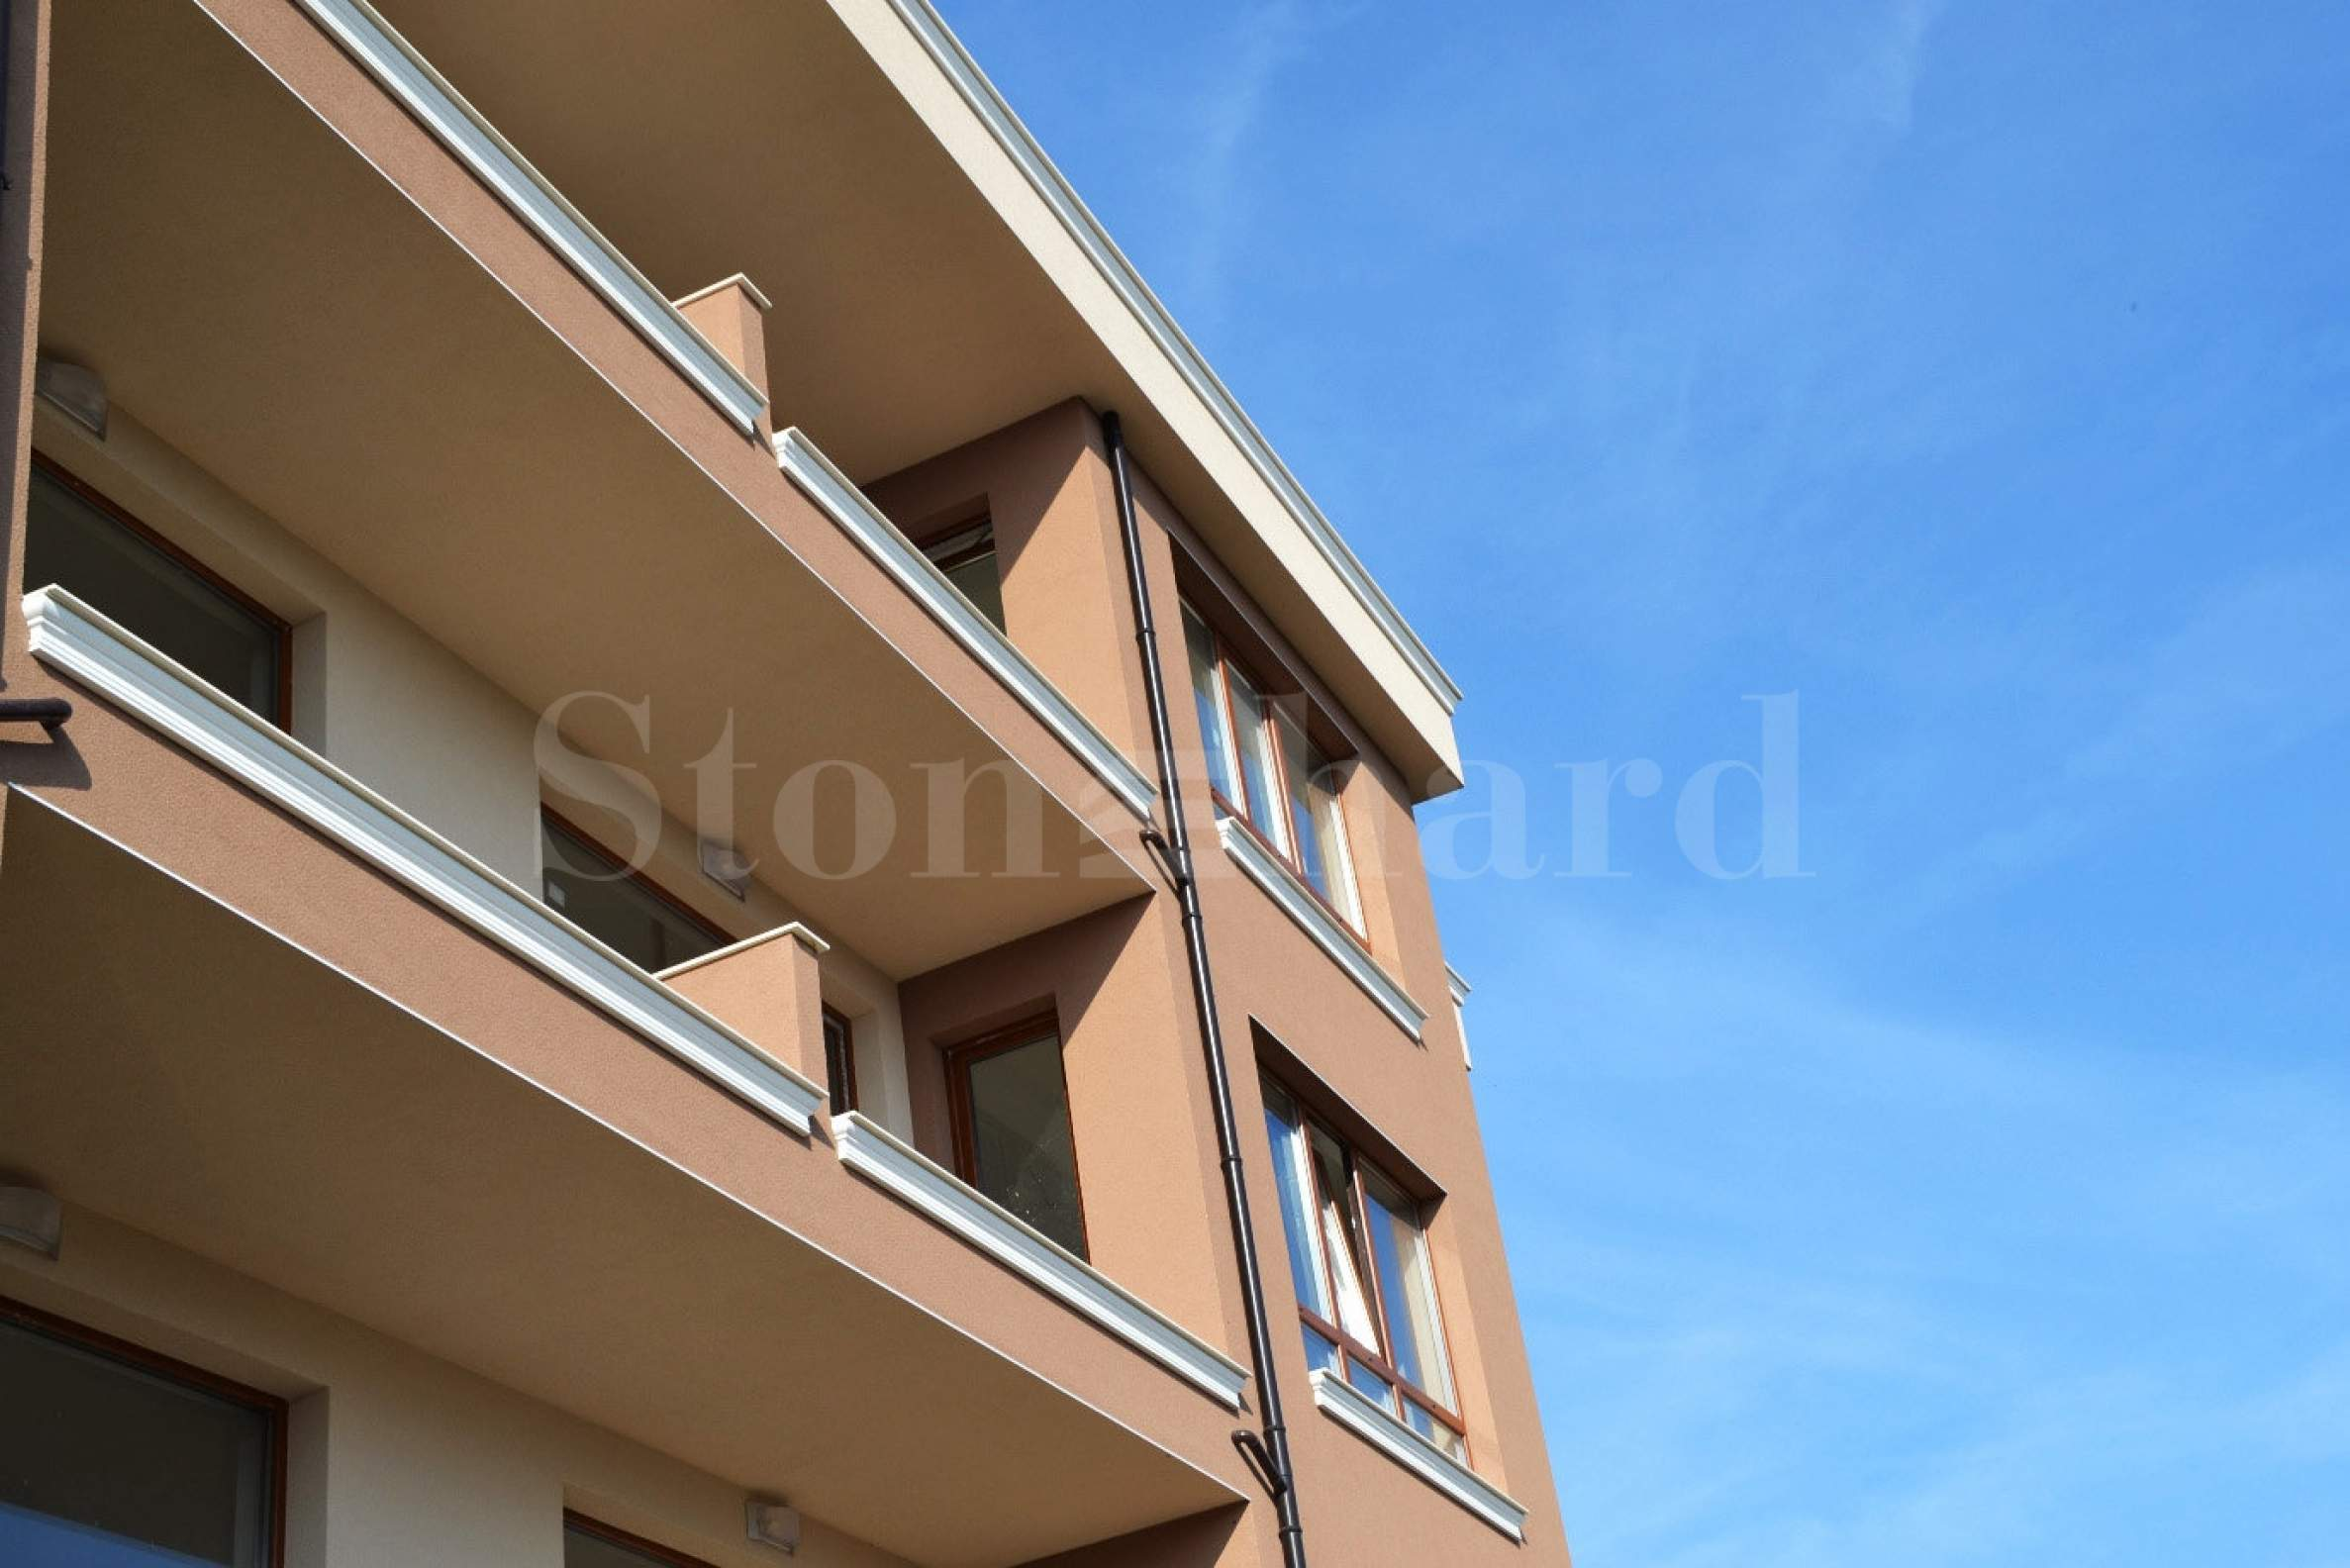 Variety of apartments in a new residential complex2 - Stonehard